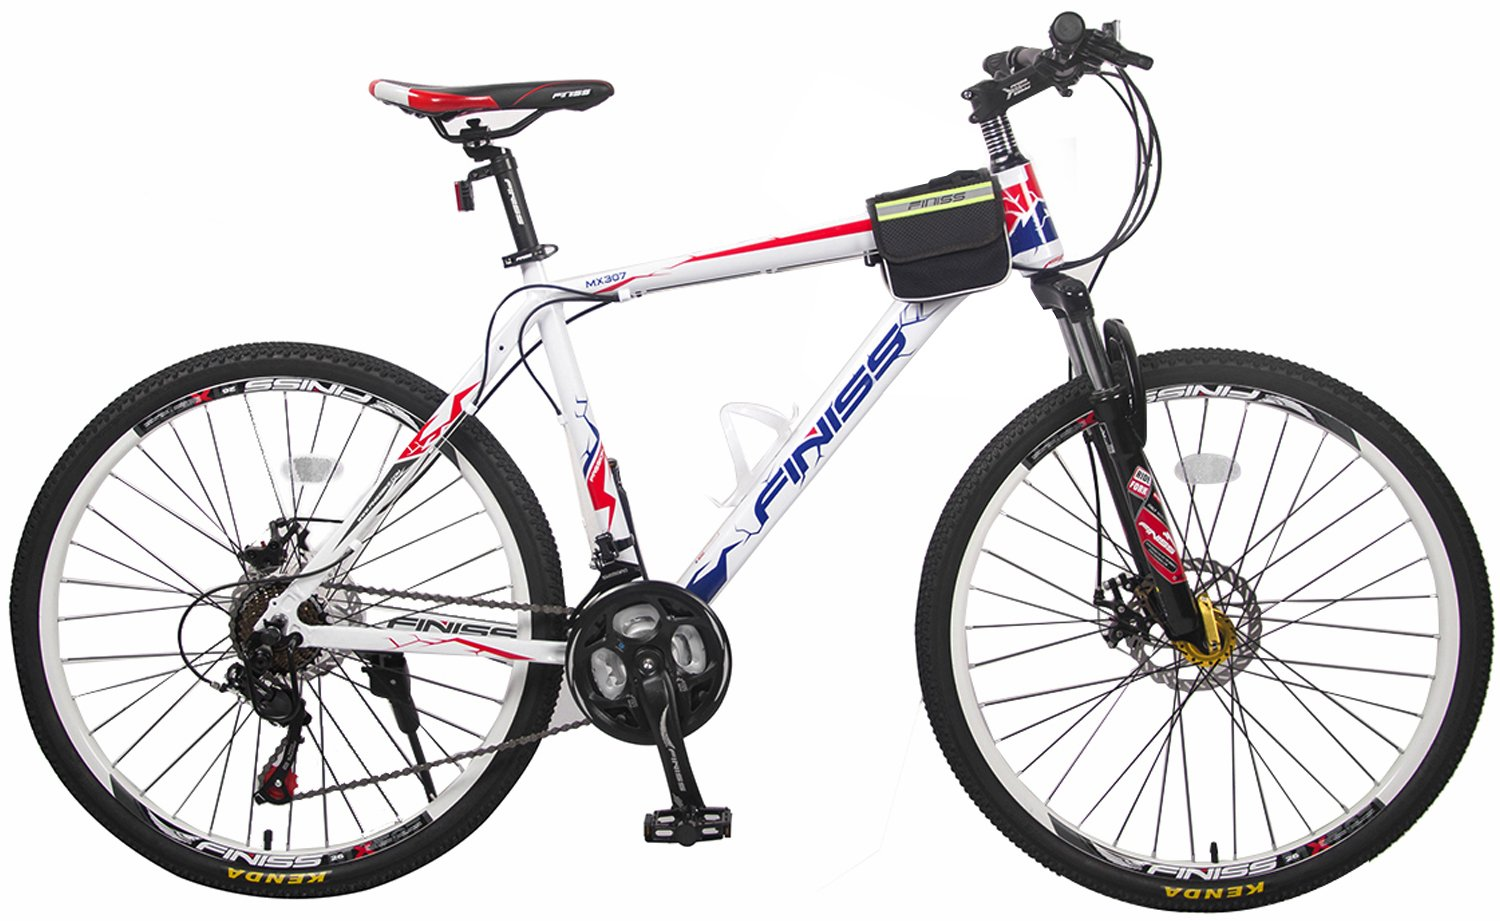 Merax Finiss 26″ Aluminum 21 Speed Mountain Bike 2